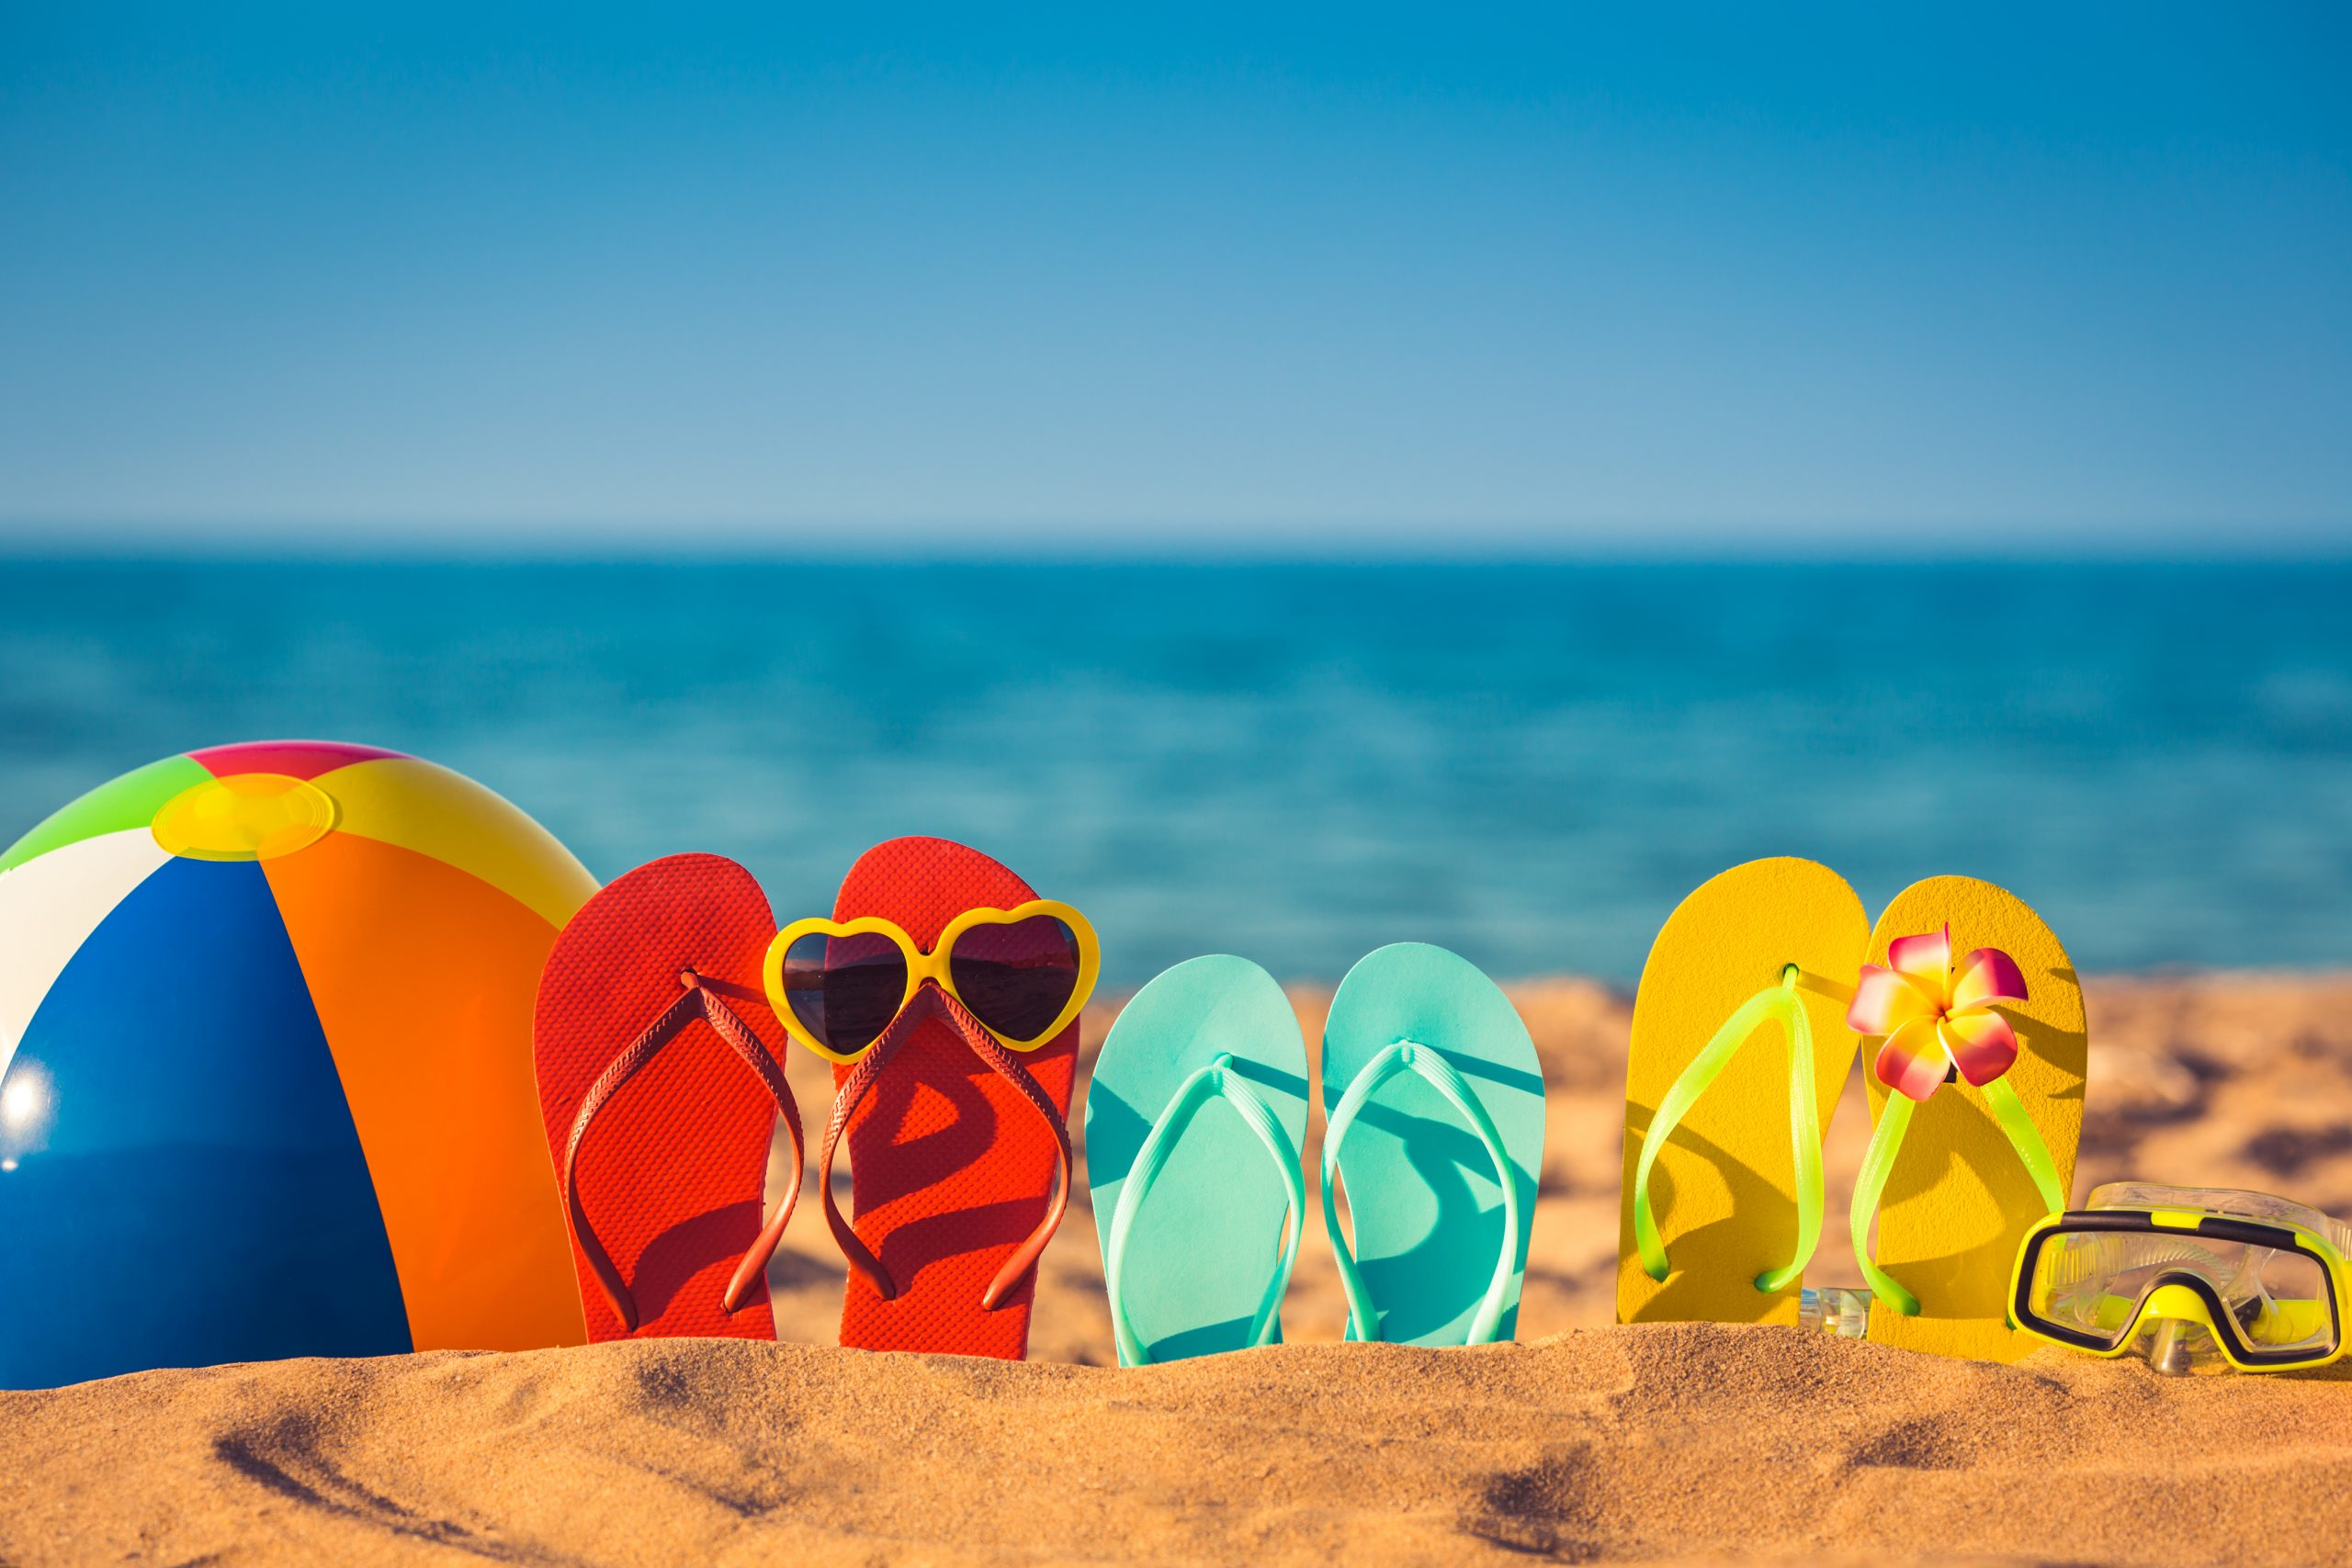 collection of coloful flipflops on a beach, reminiscent of summer in texas activities